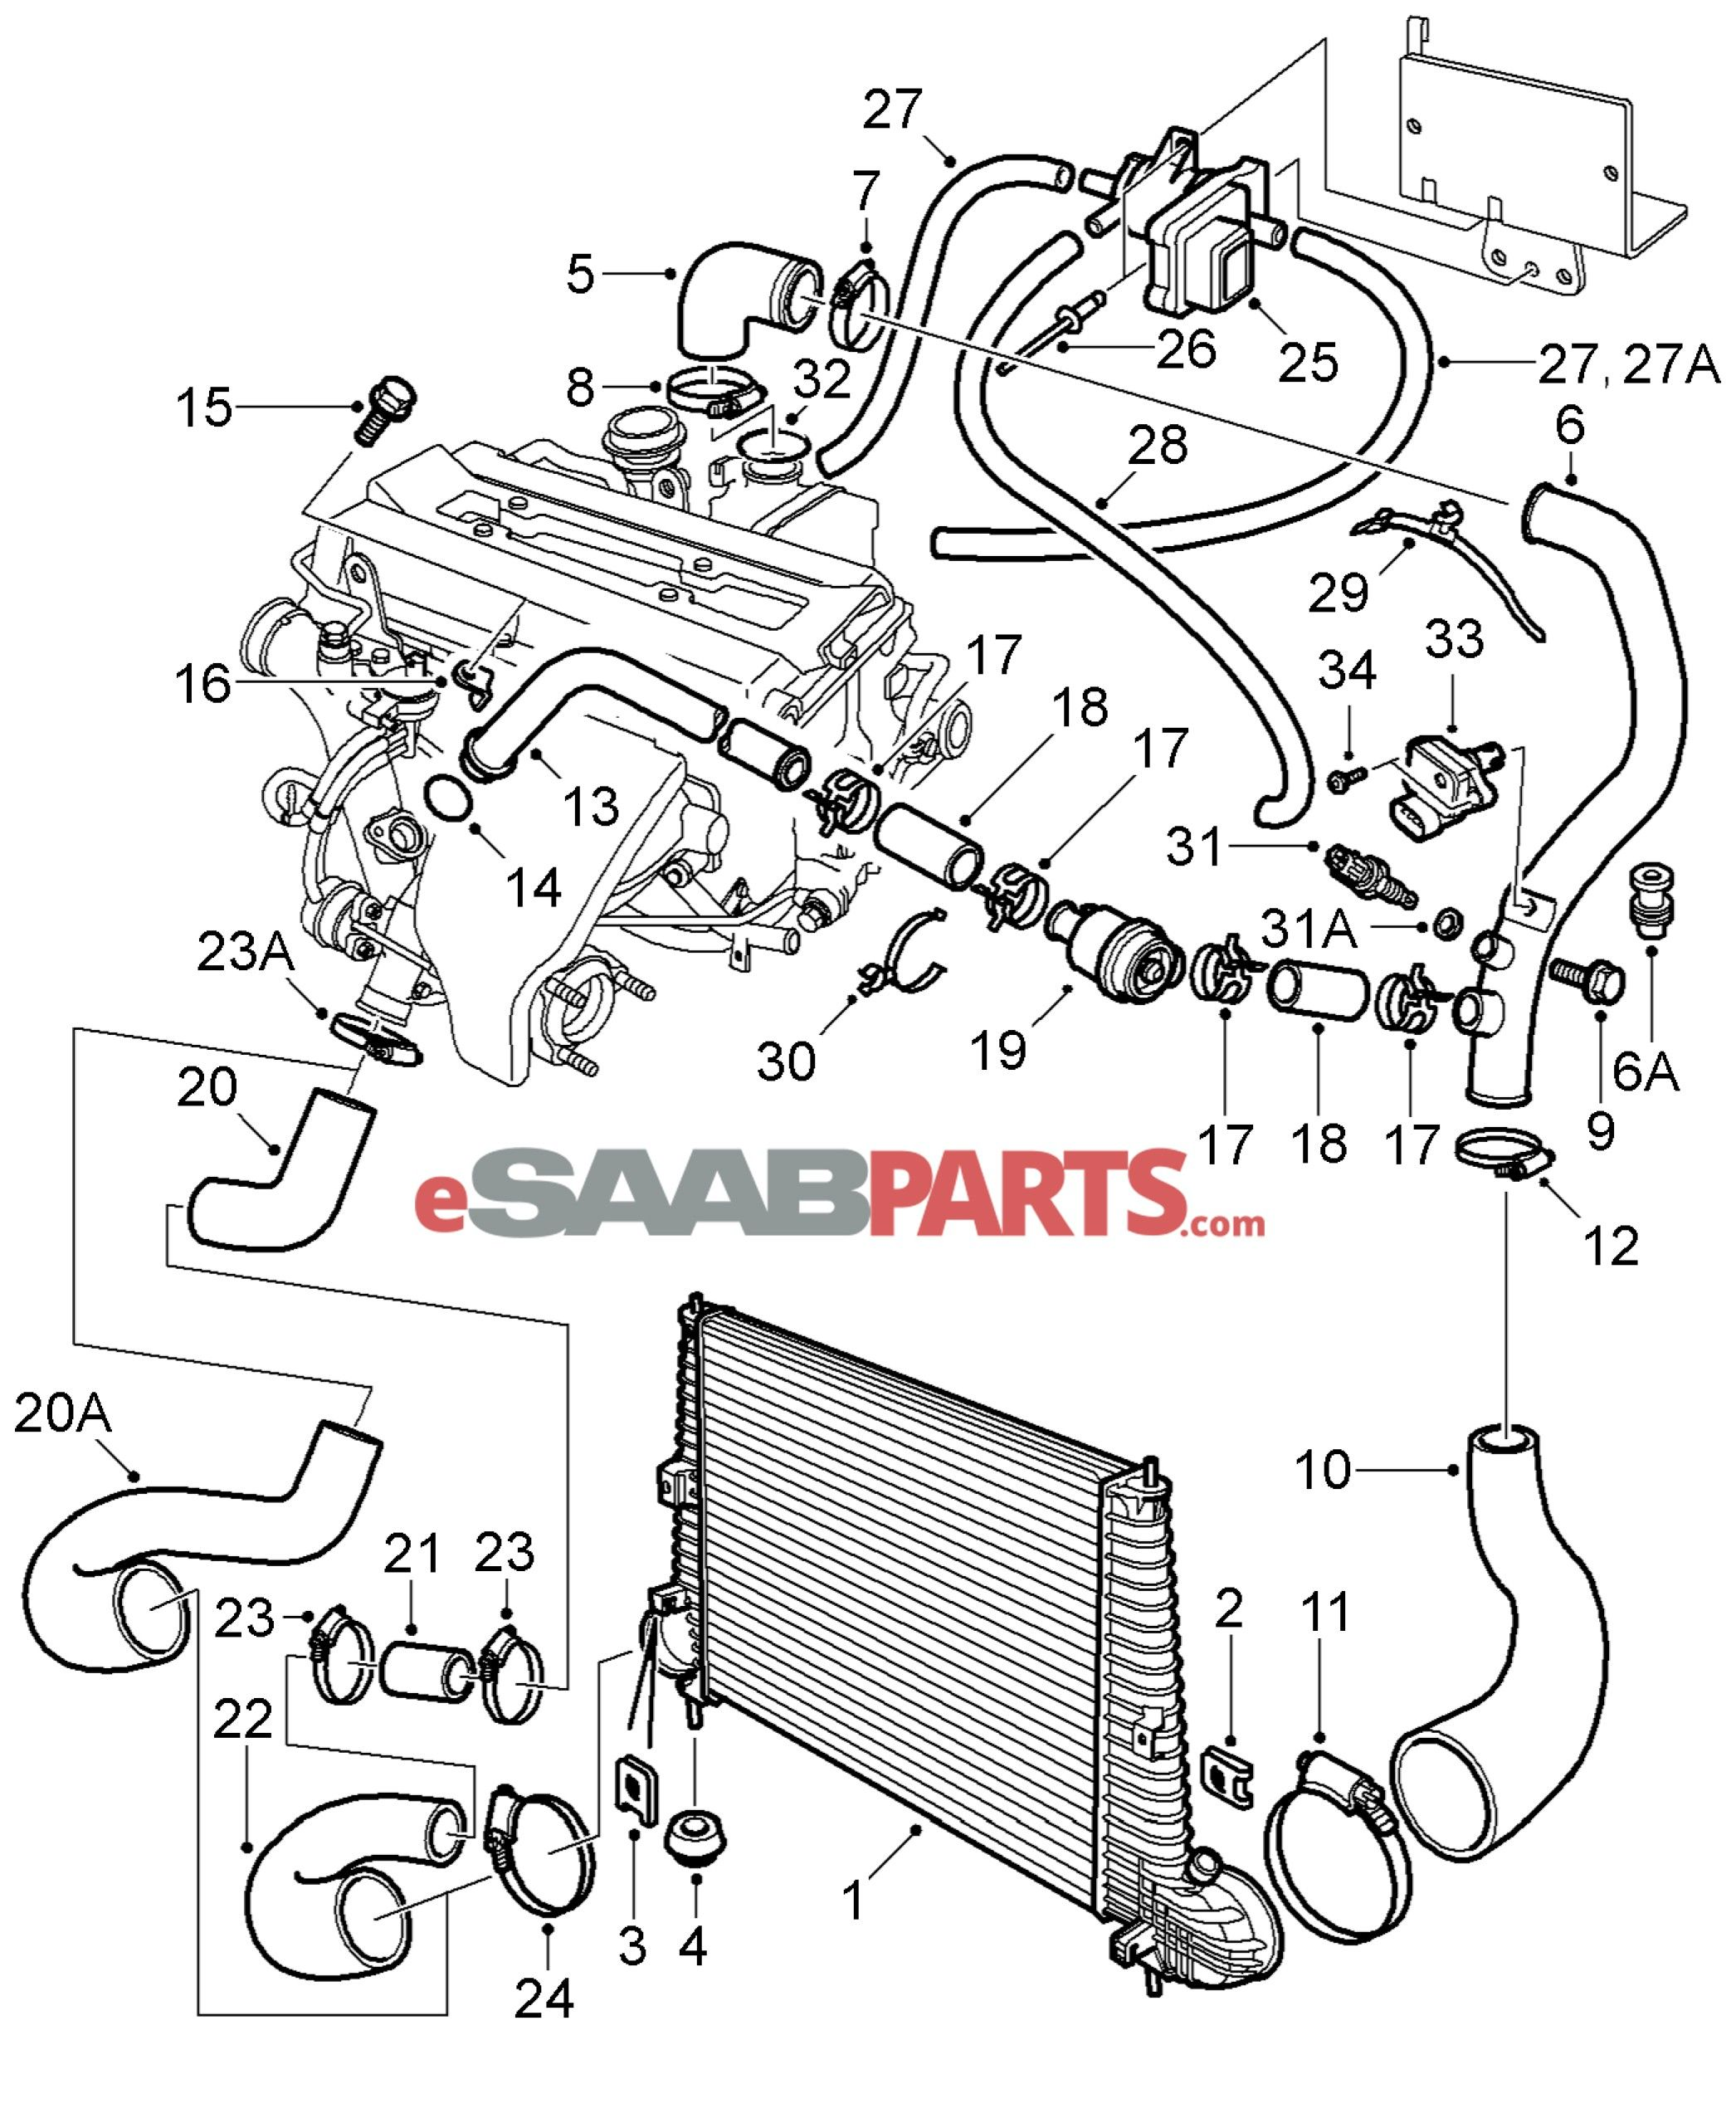 saab 9 5 engine diagram 2006 saab 9 3 cooling system diagram 2000 2000 saab 9 3 engine diagrams [ 2092 x 2558 Pixel ]